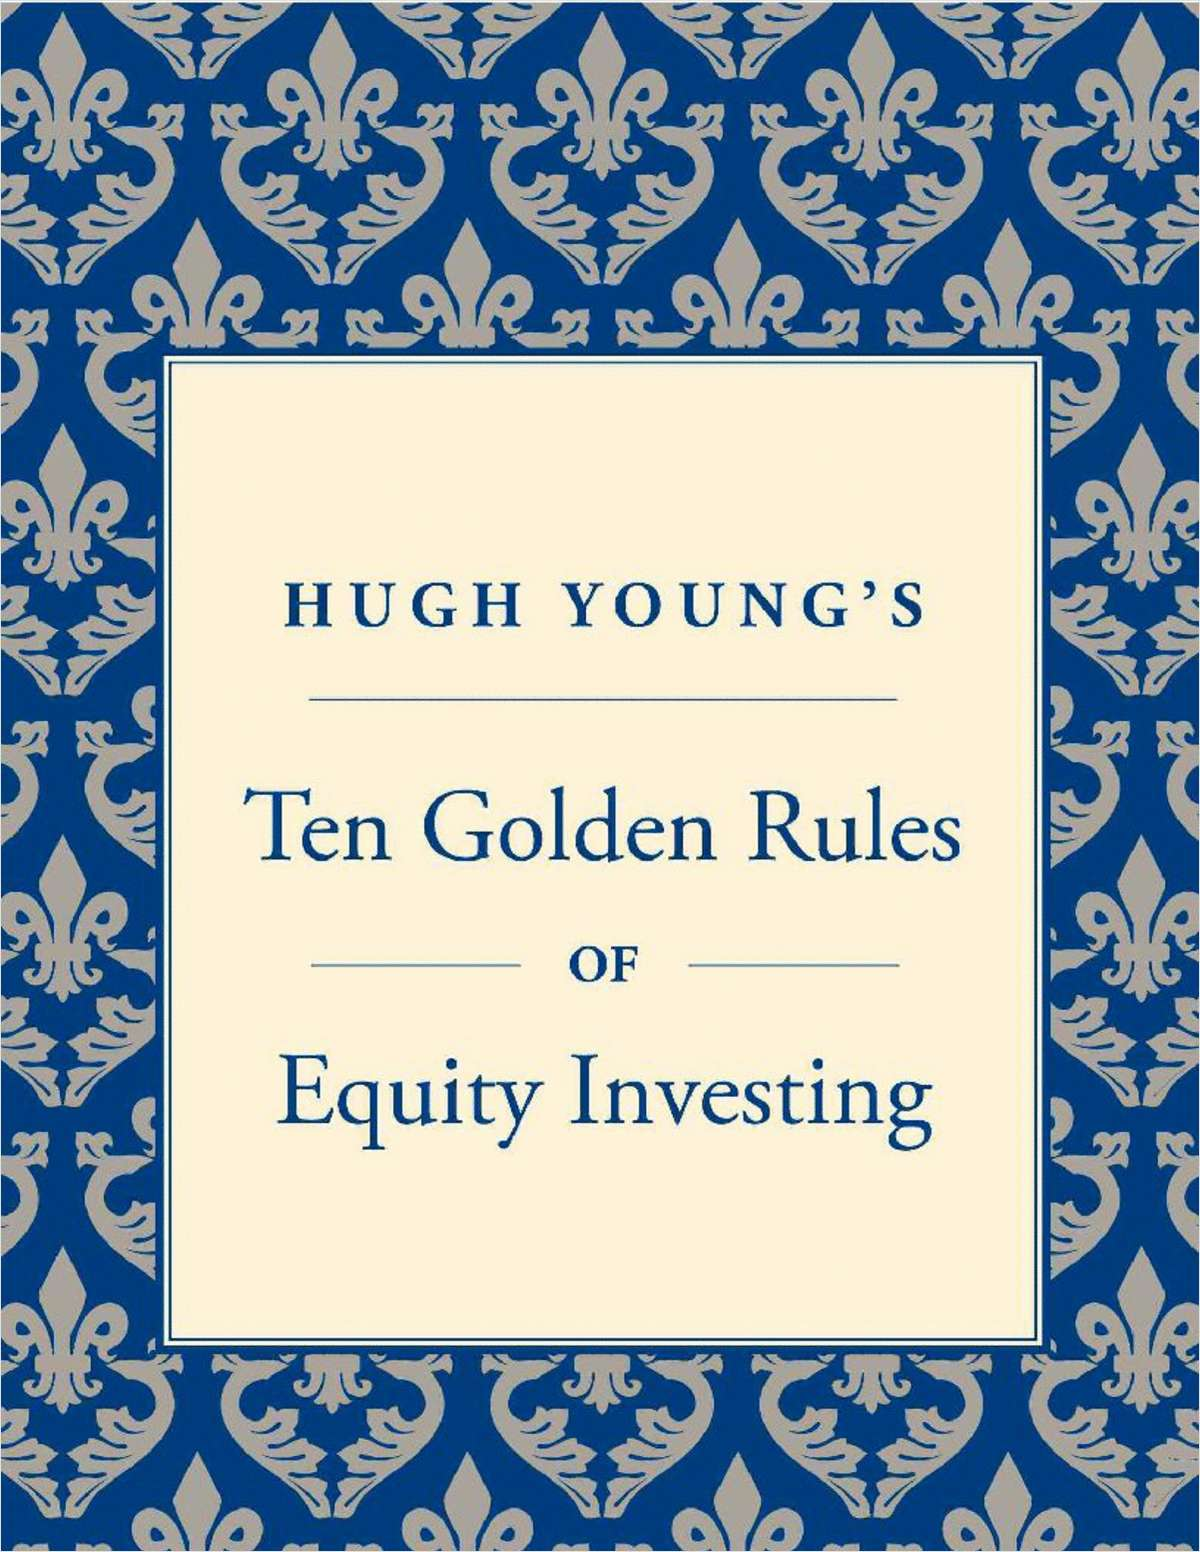 Hugh Young's Ten Golden Rules of Equity Investing